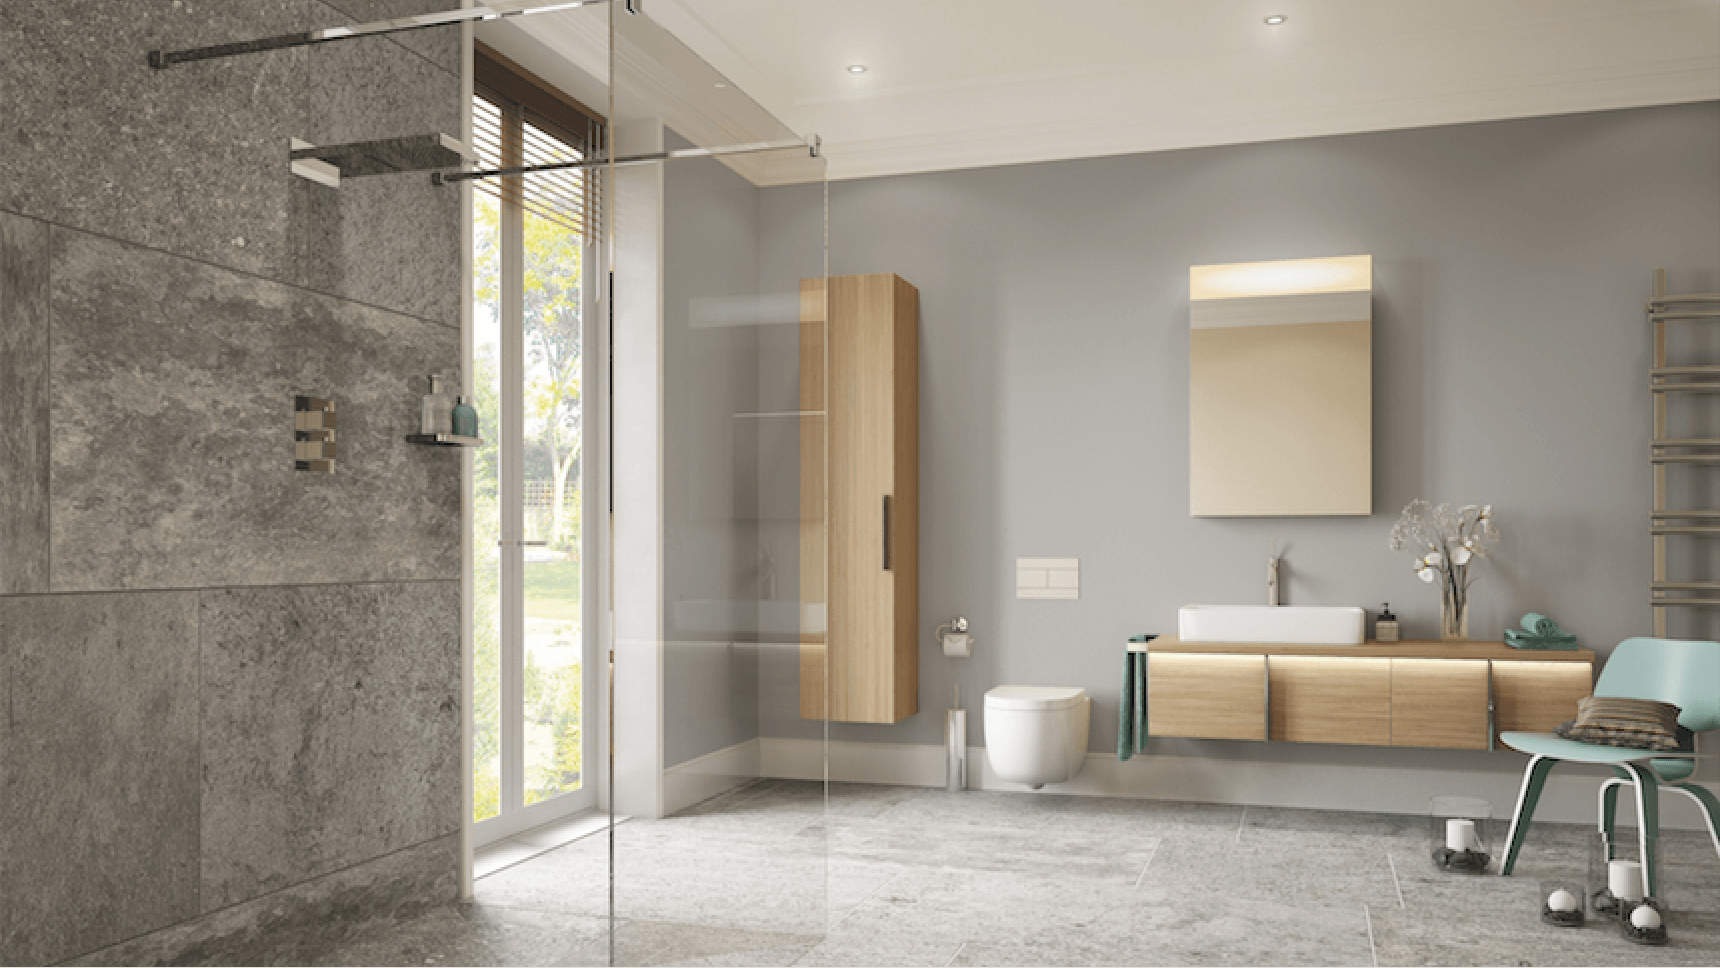 On The Level: Luxury wet room